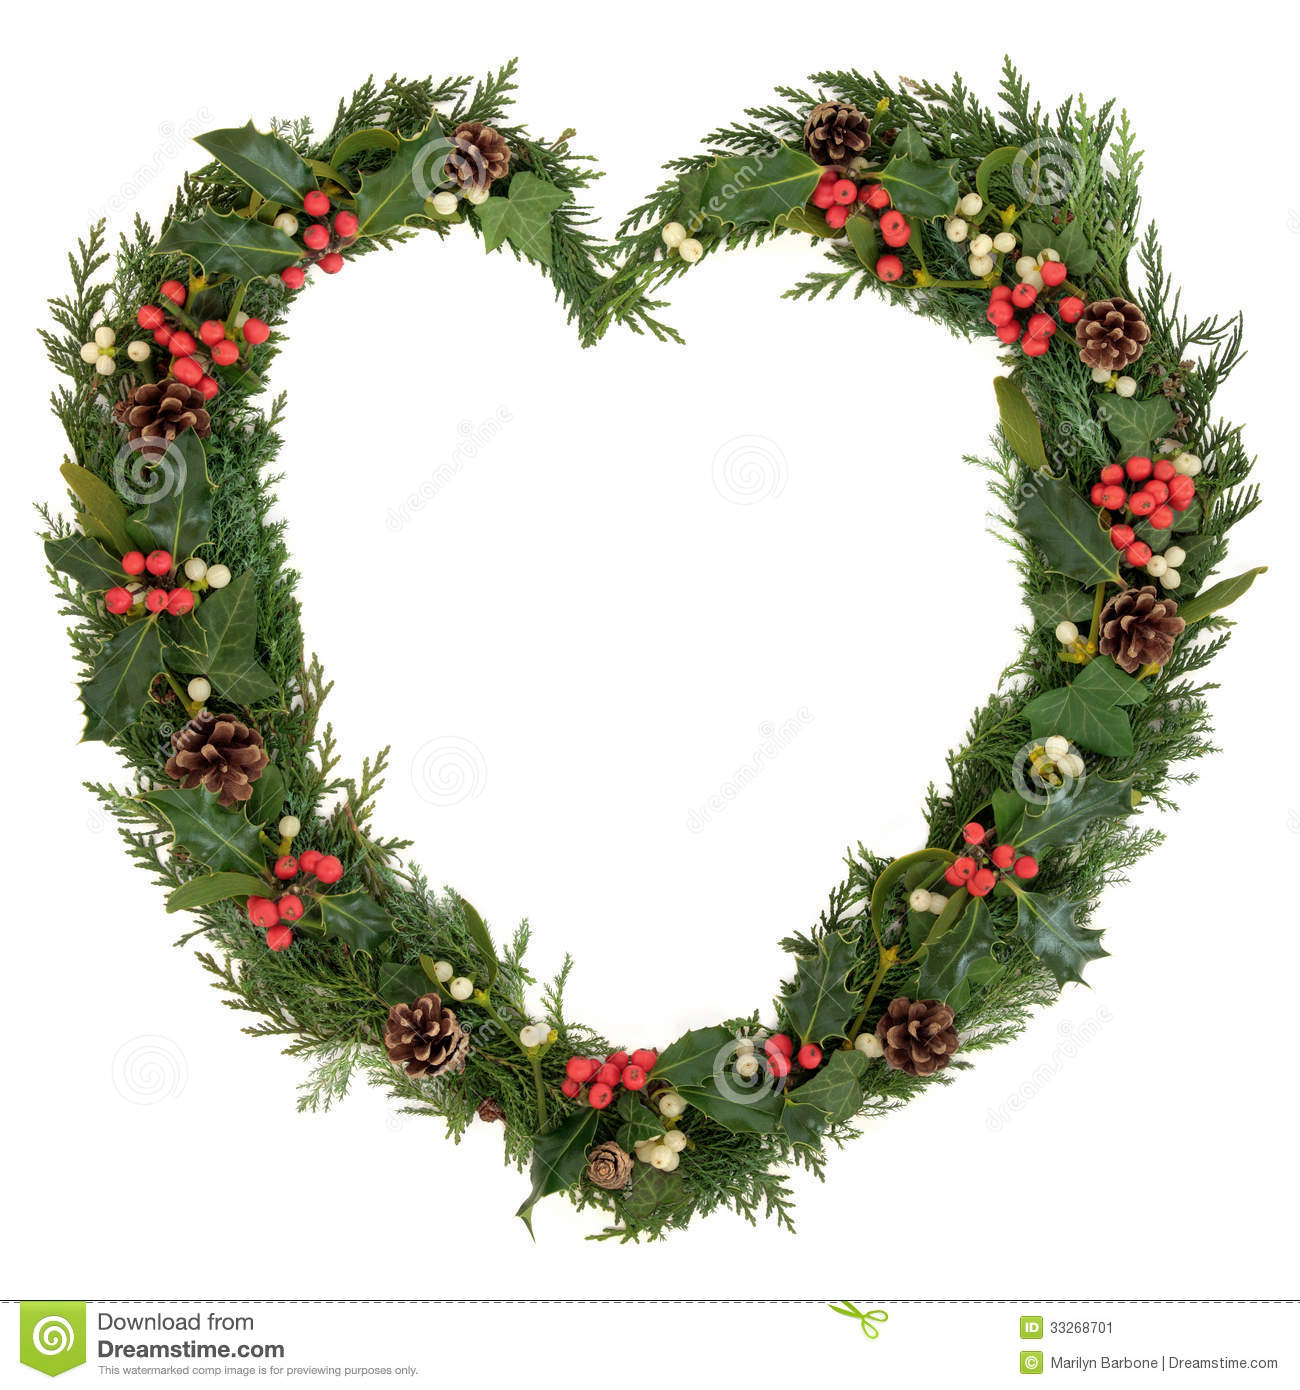 christmas heart wreath stock image image of floral  holly holly berry clip art border holly berry clip art free black while